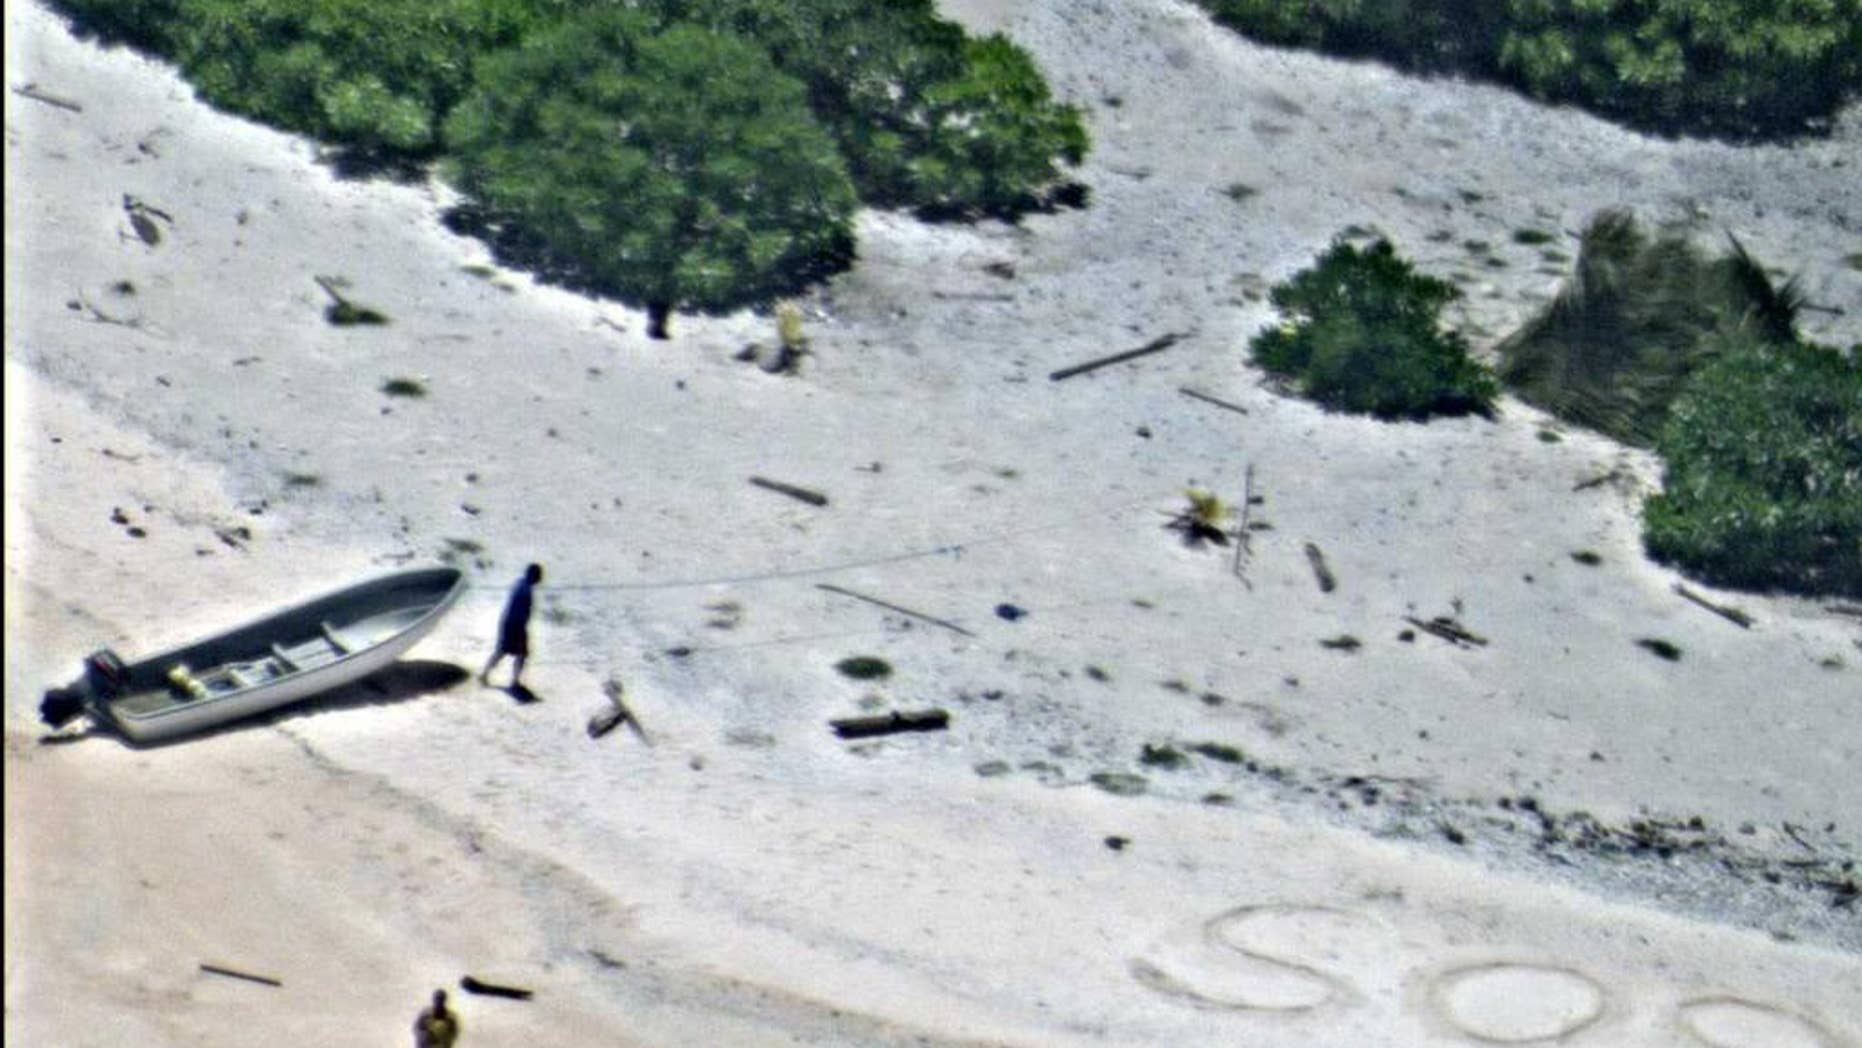 """In this Aug. 25, 2016, photo provided by the U.S. Navy, a pair of stranded mariners signal for help as a U.S. Navy P-8A Poseidon aircraft crew from Patrol Squadron (VP) 8 flies over in support of a Coast Guard search and rescue mission on an uninhabited island in Micronesia, Hawaii. The U.S. Coast Guard says the two stranded mariners were rescued Friday after crews saw their """"SOS"""" in the sand. (U.S. Navy via AP)"""